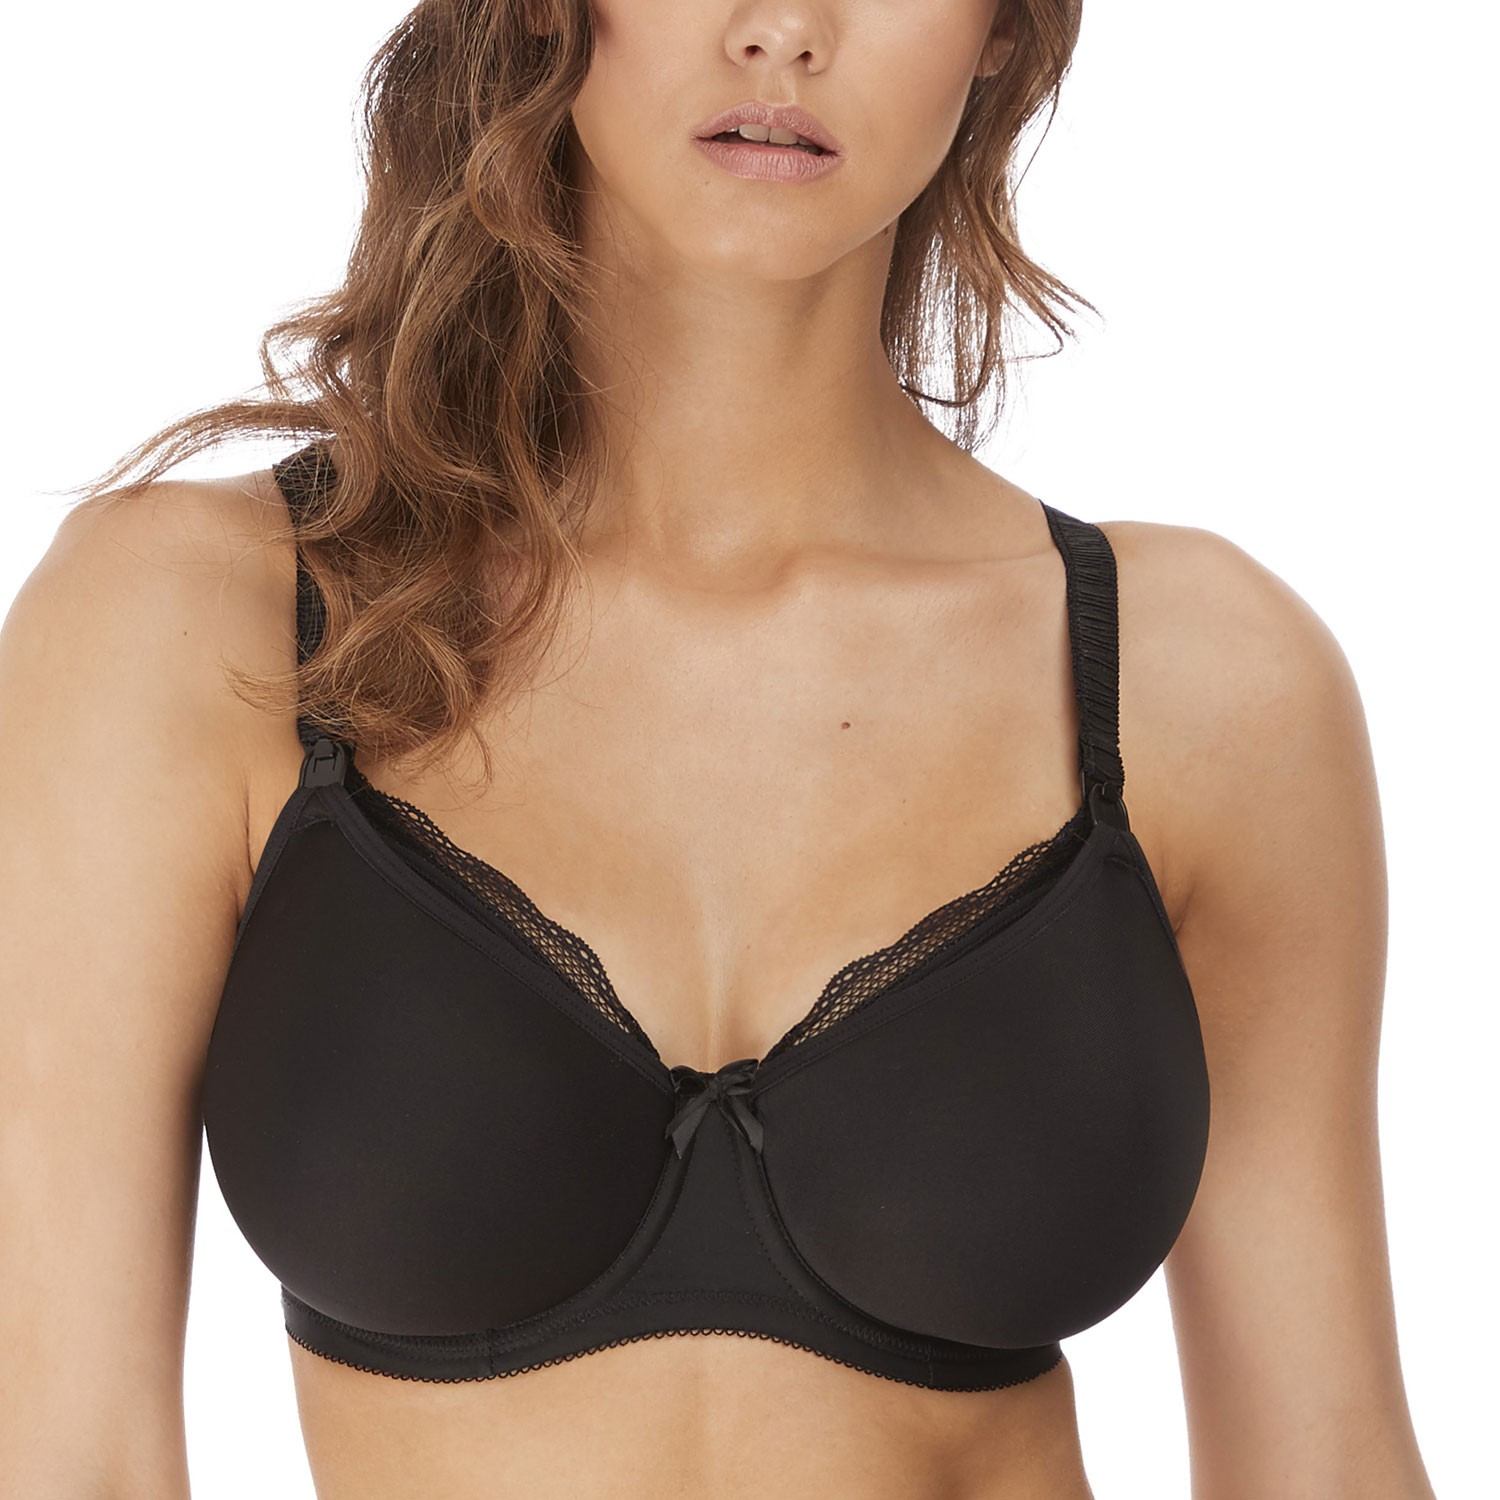 Freya Pure Underwired Moulded Nursing Bra SIZE UK 32E Ombre Brown 1581 BRAND NEW